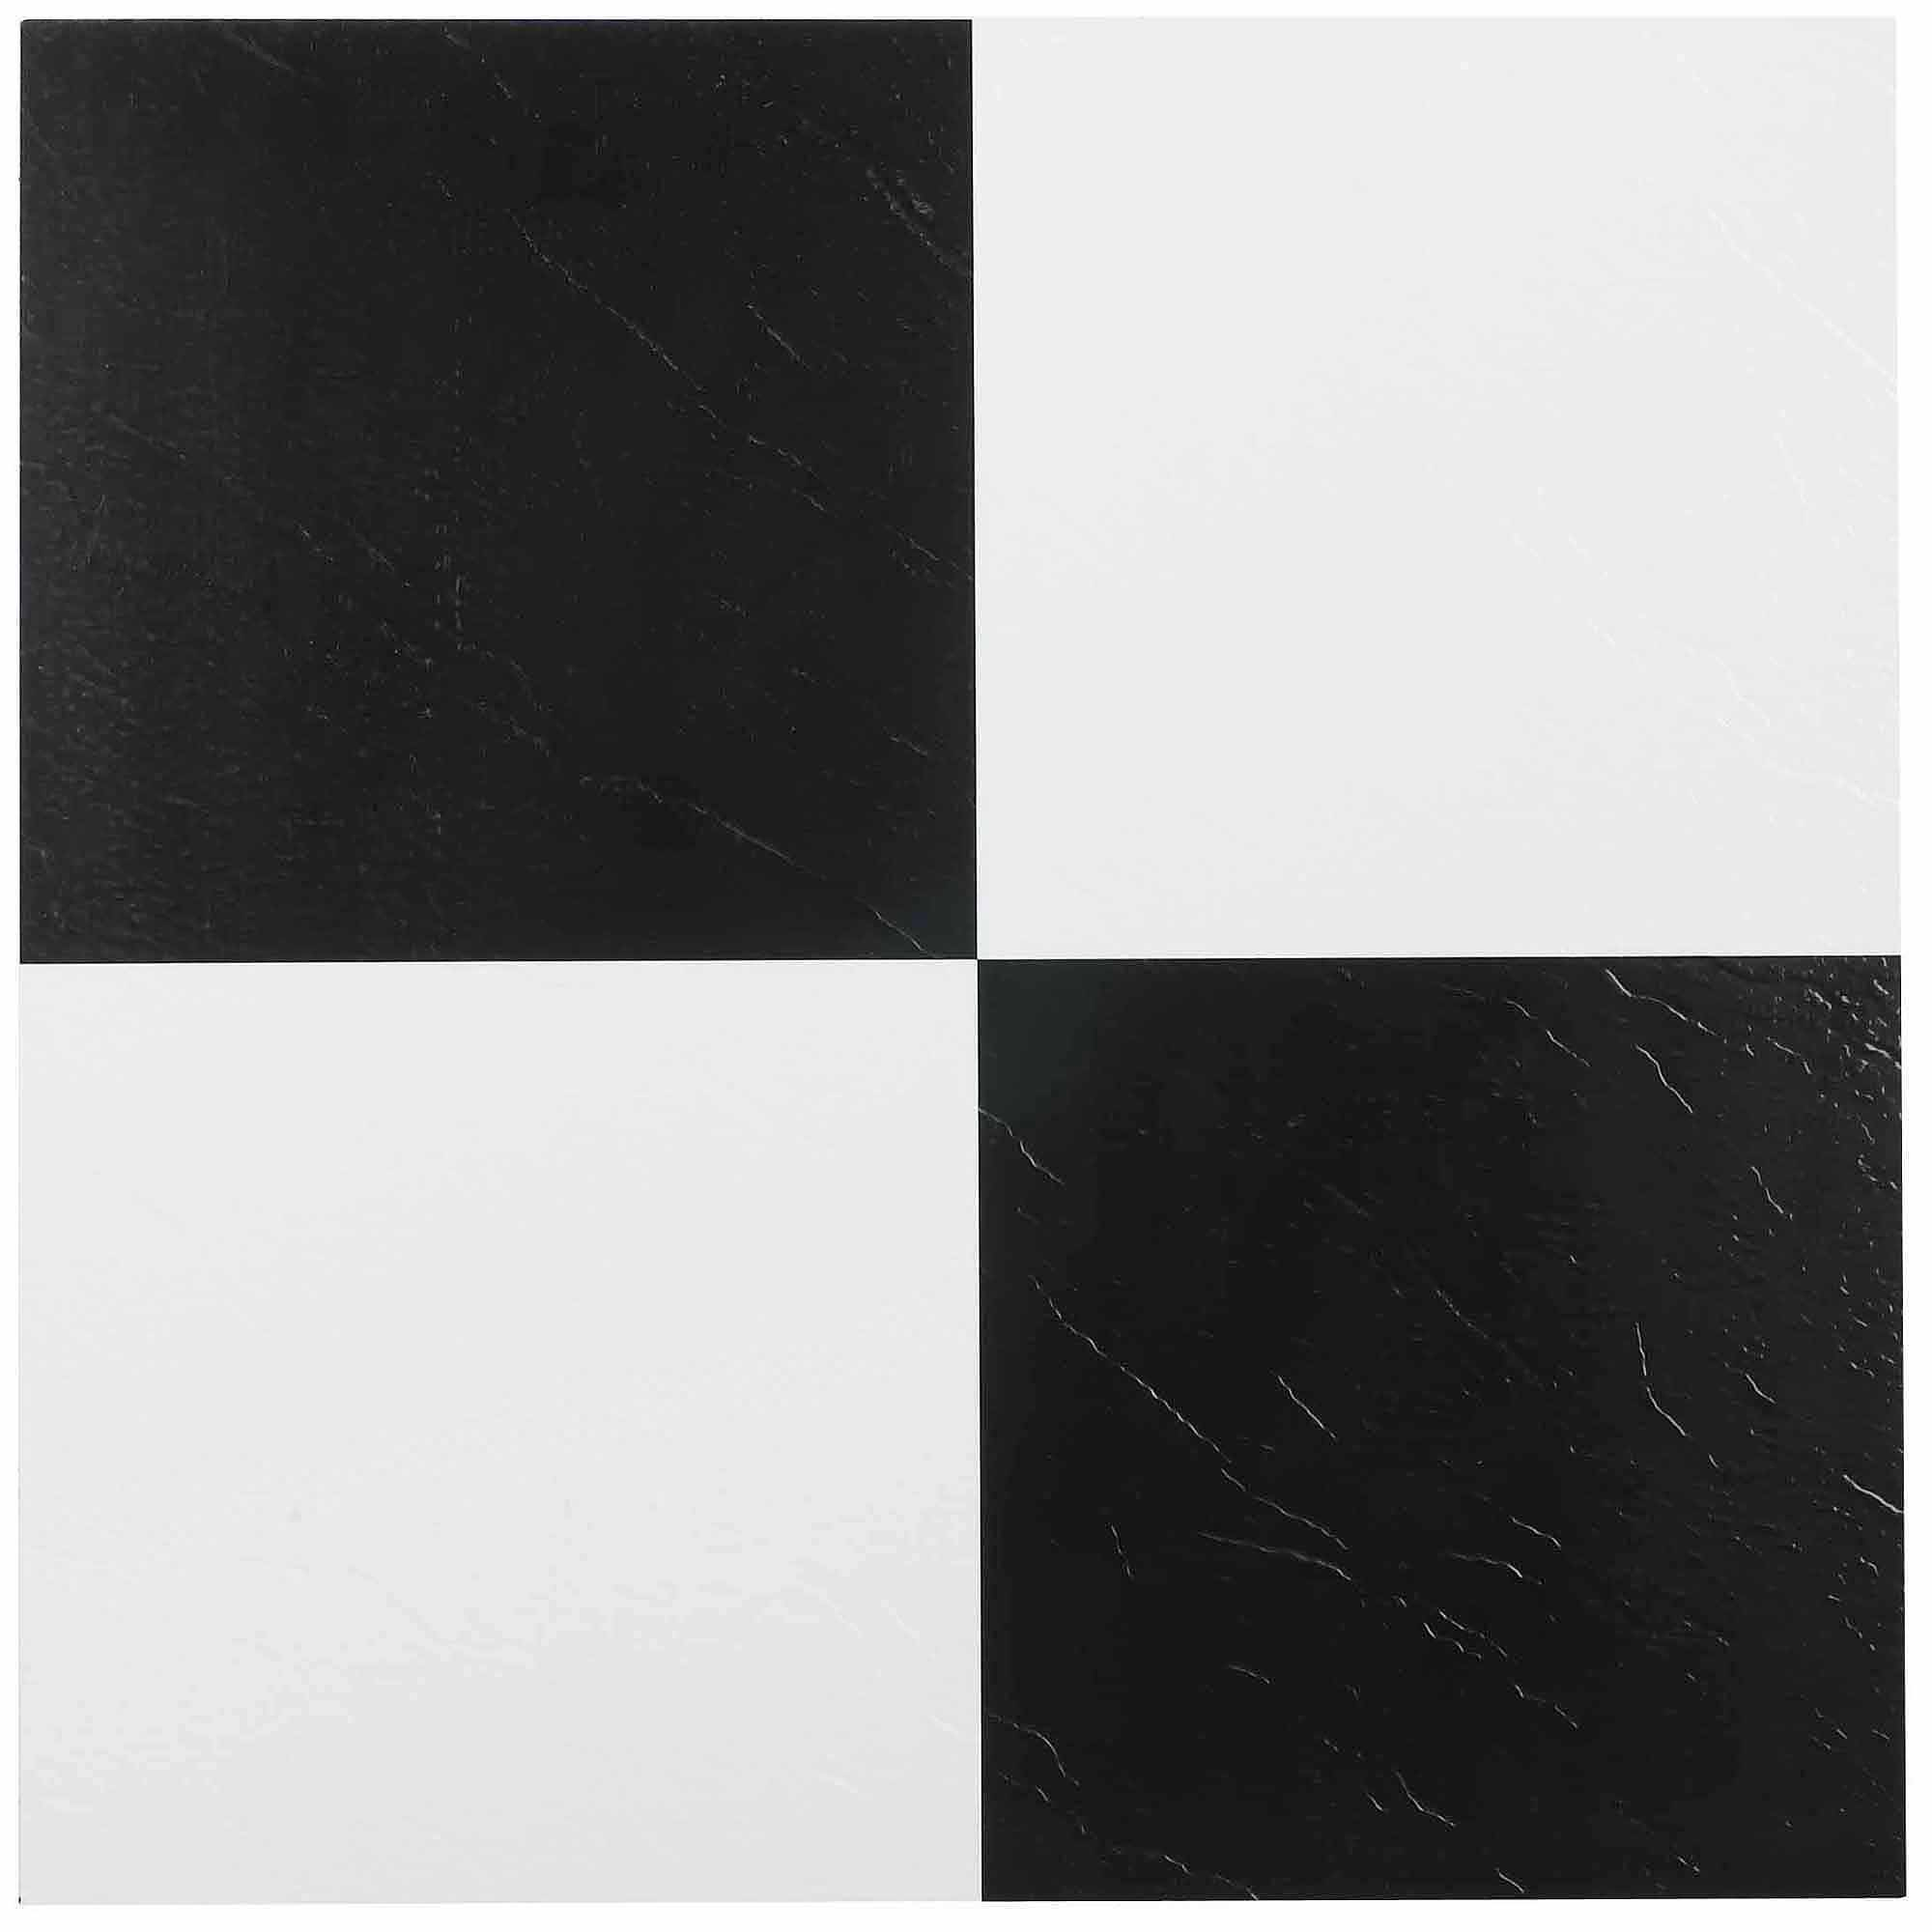 NEXUS South West Ceramic 12x12 Self Adhesive Vinyl Floor Tile 20 Tiles 20 S